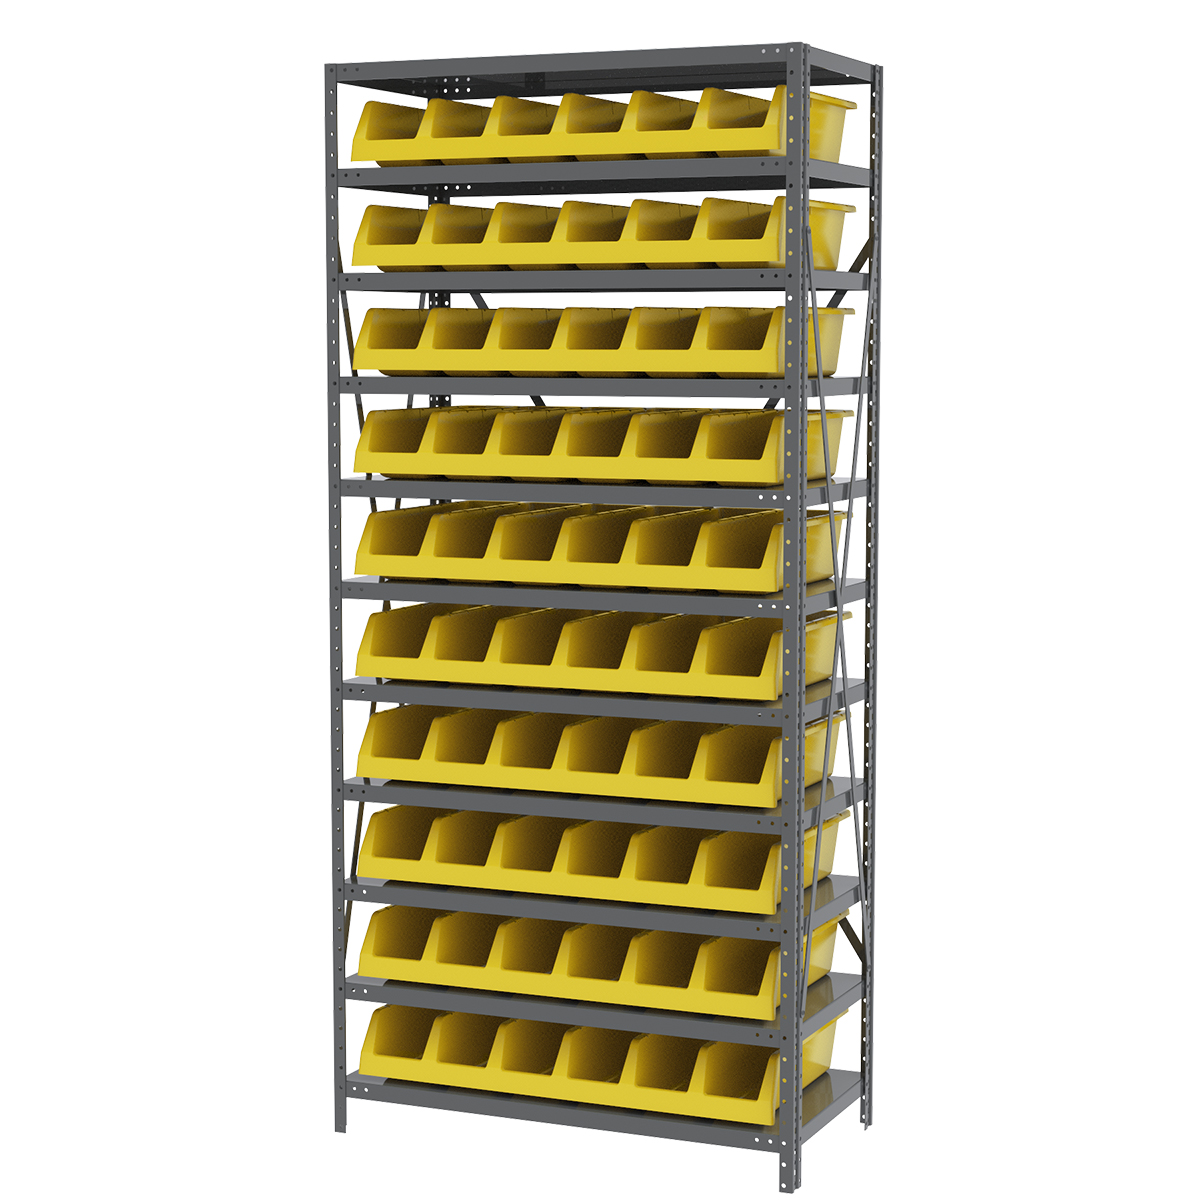 Steel Shelving Kit, 18x36x79, 10 Bins, Gray/Yellow.  This item sold in carton quantities of 1.